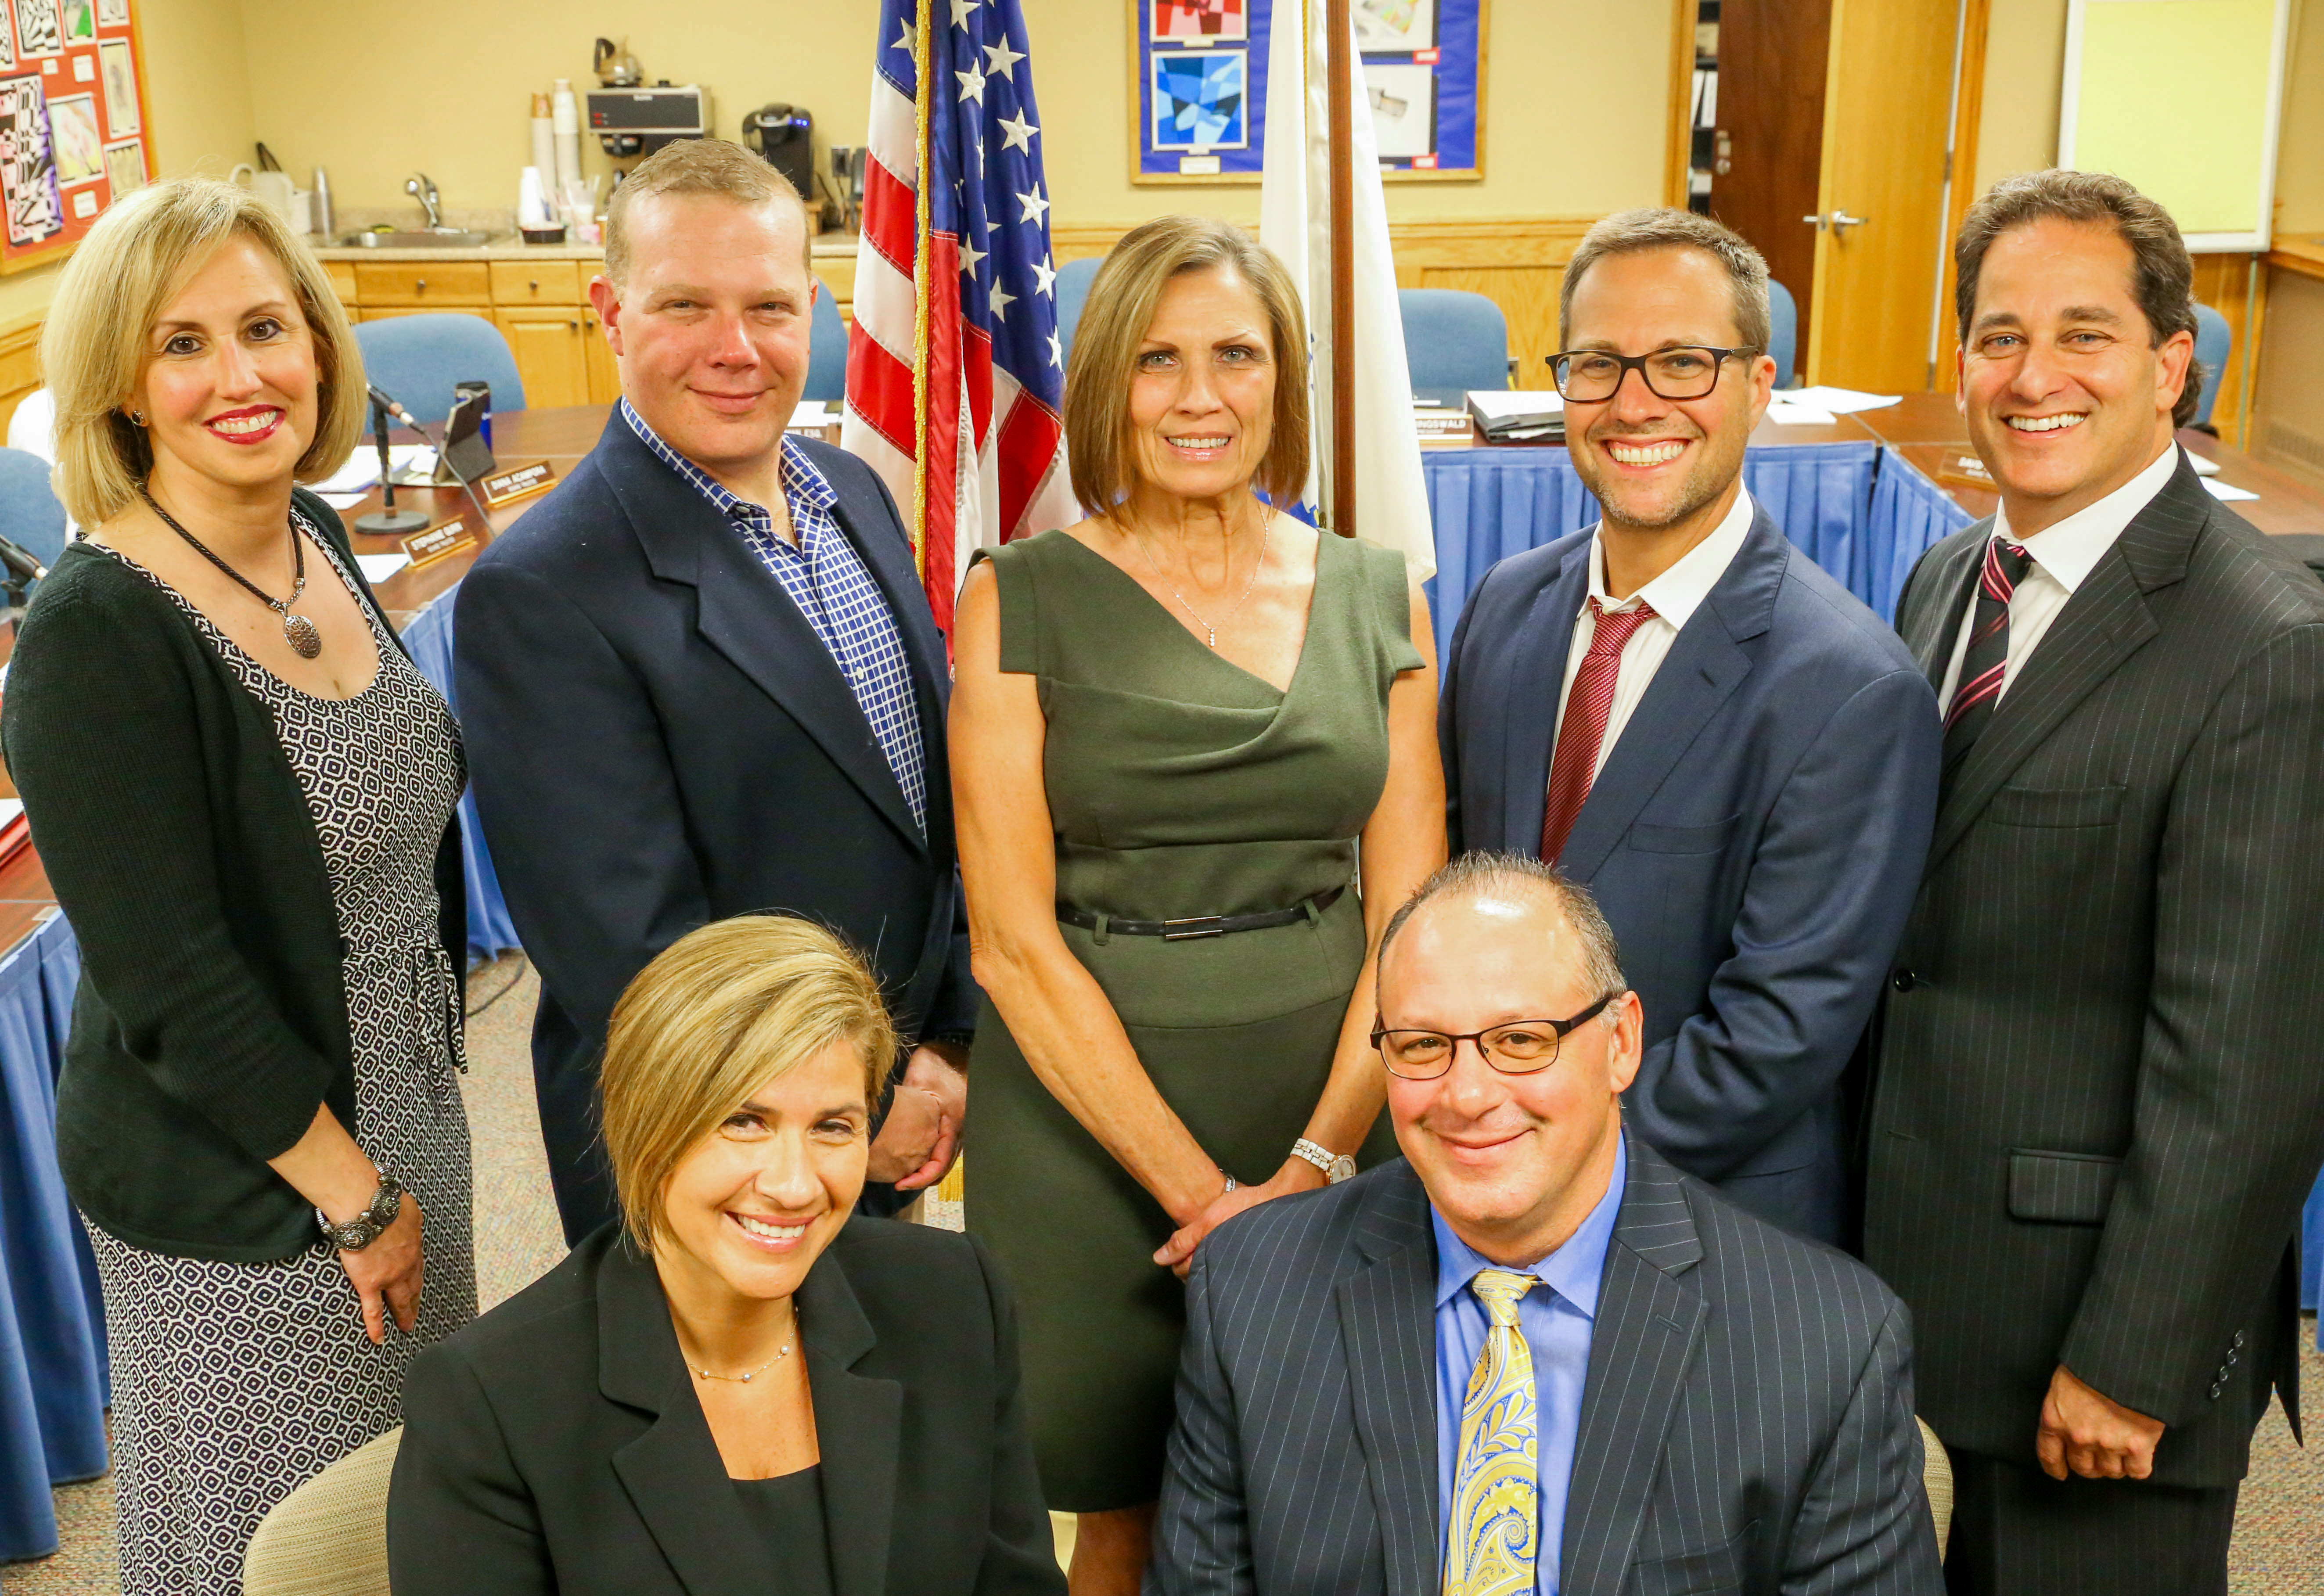 Half Hollow Hills Celebrates Board Trustees For Their Commitment To Students And Community